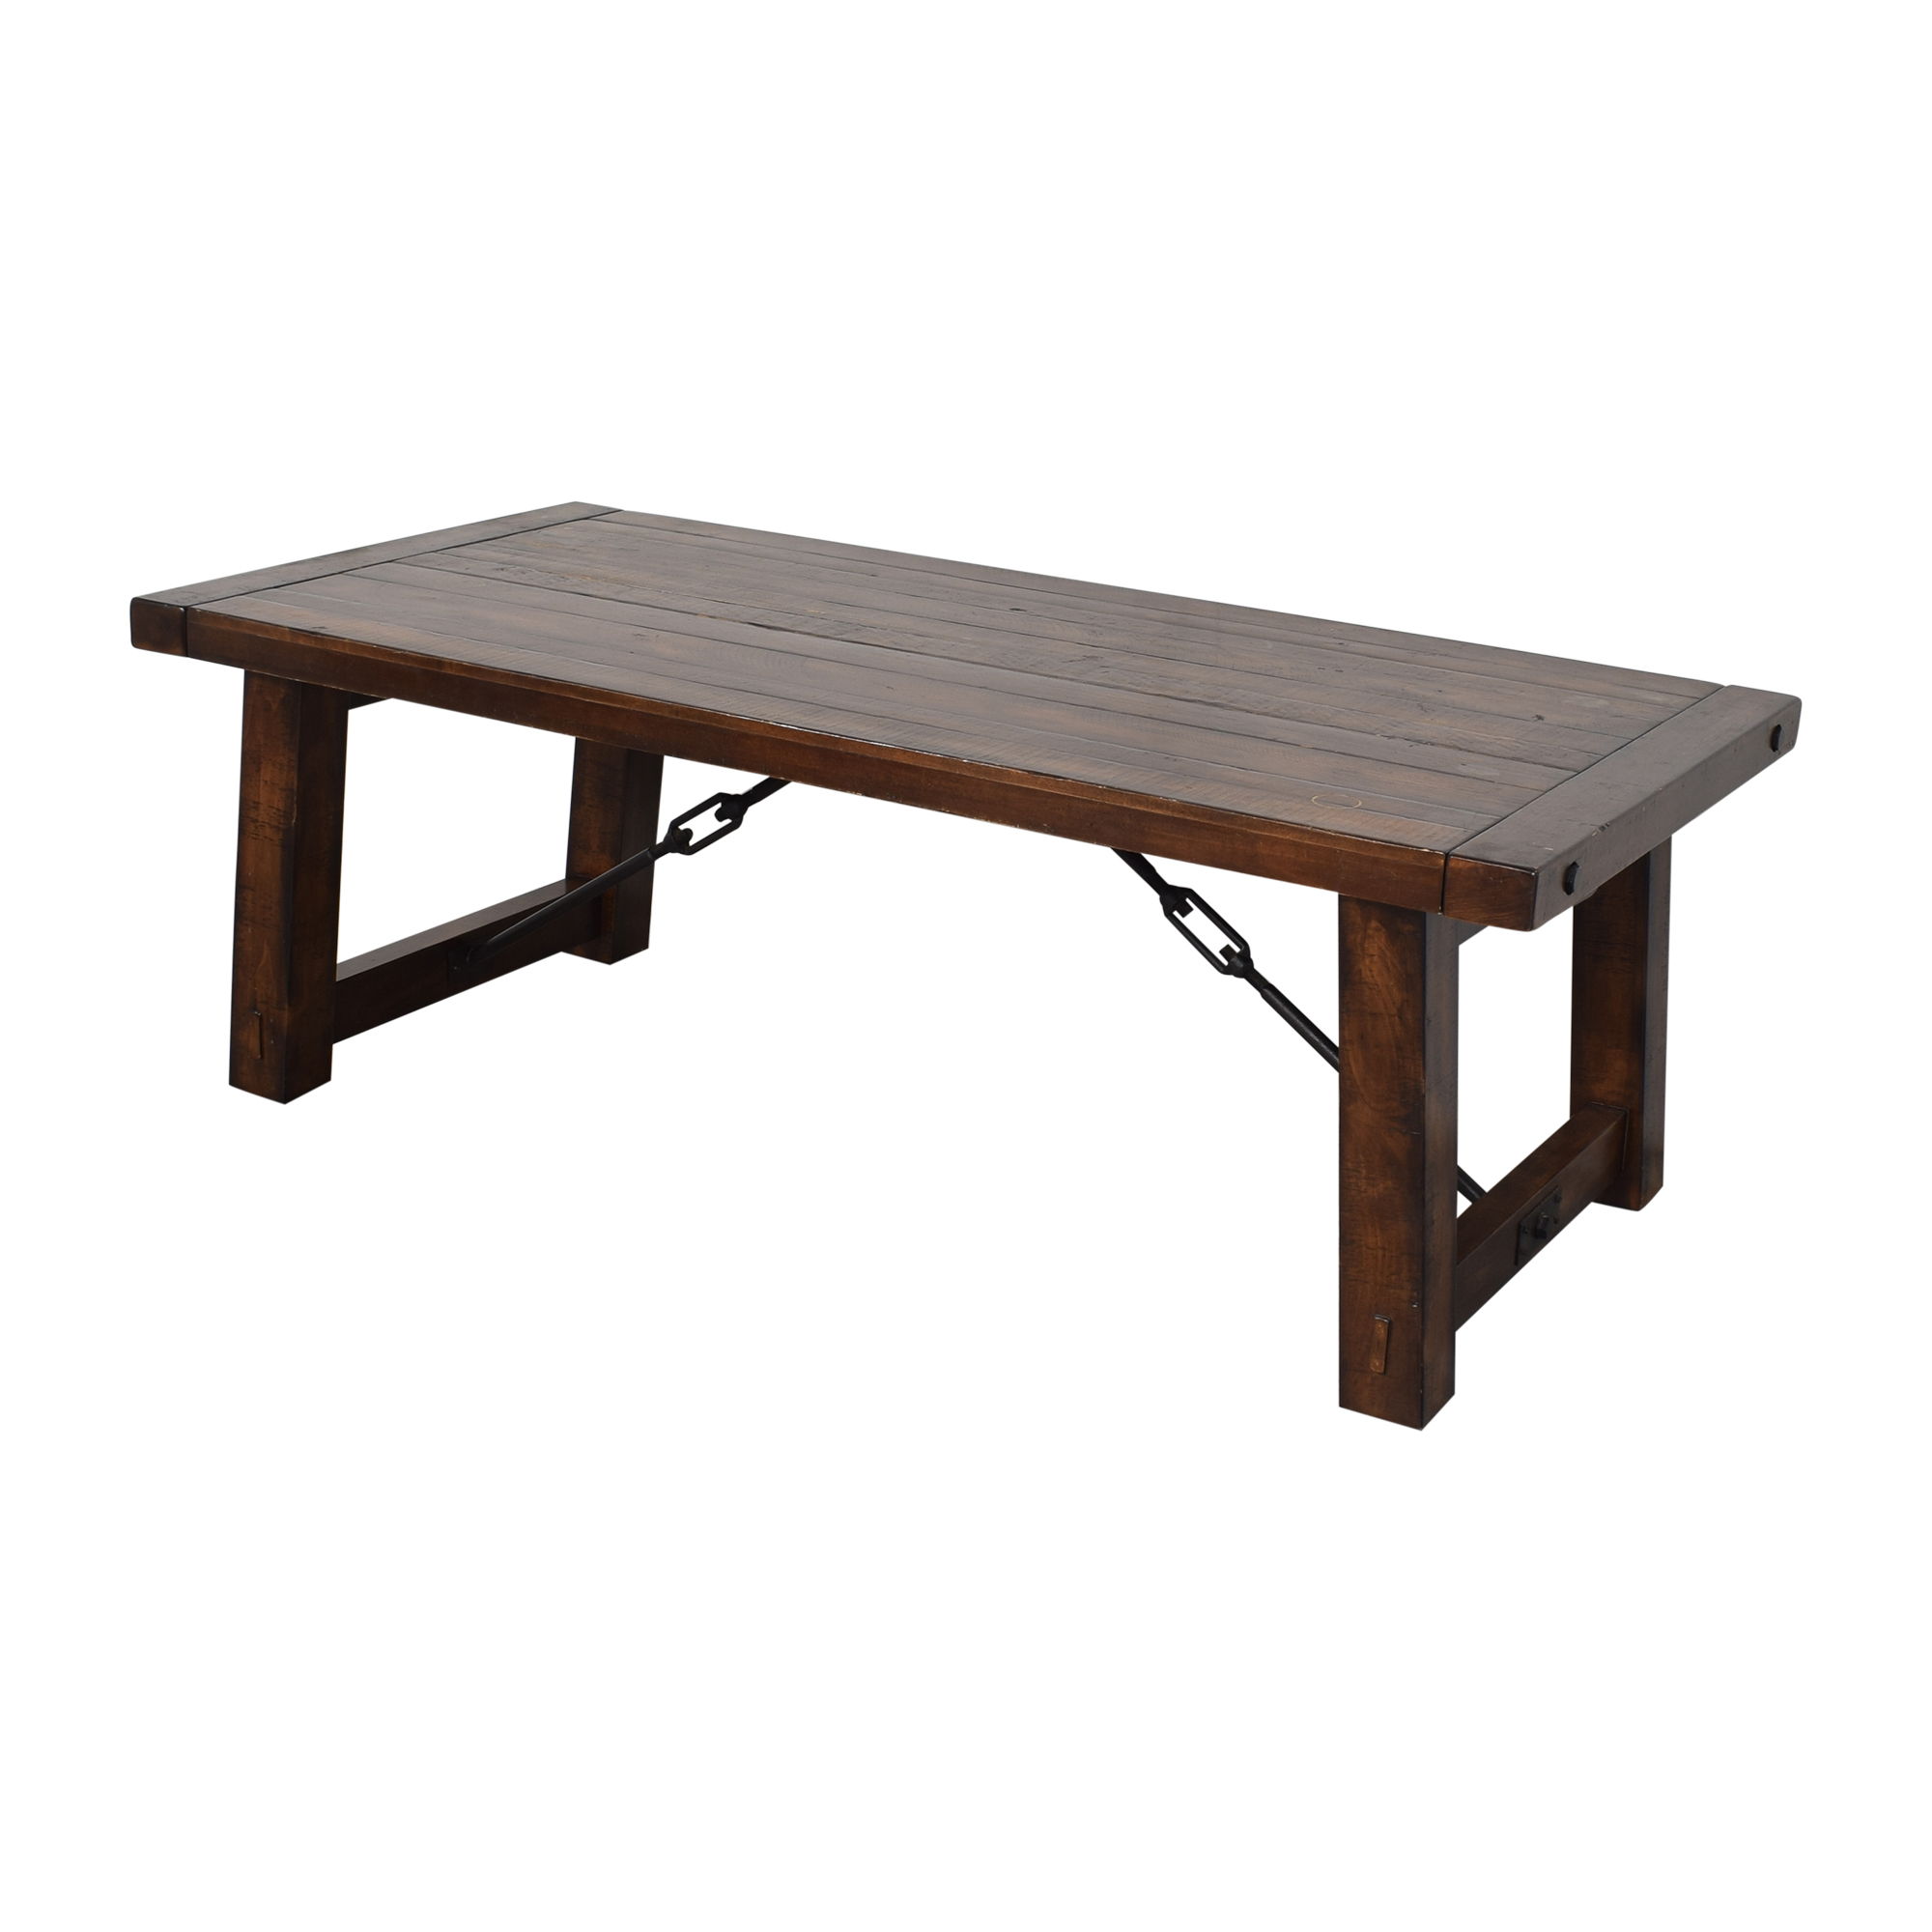 Pottery Barn Pottery Barn Benchwright Extending Table coupon